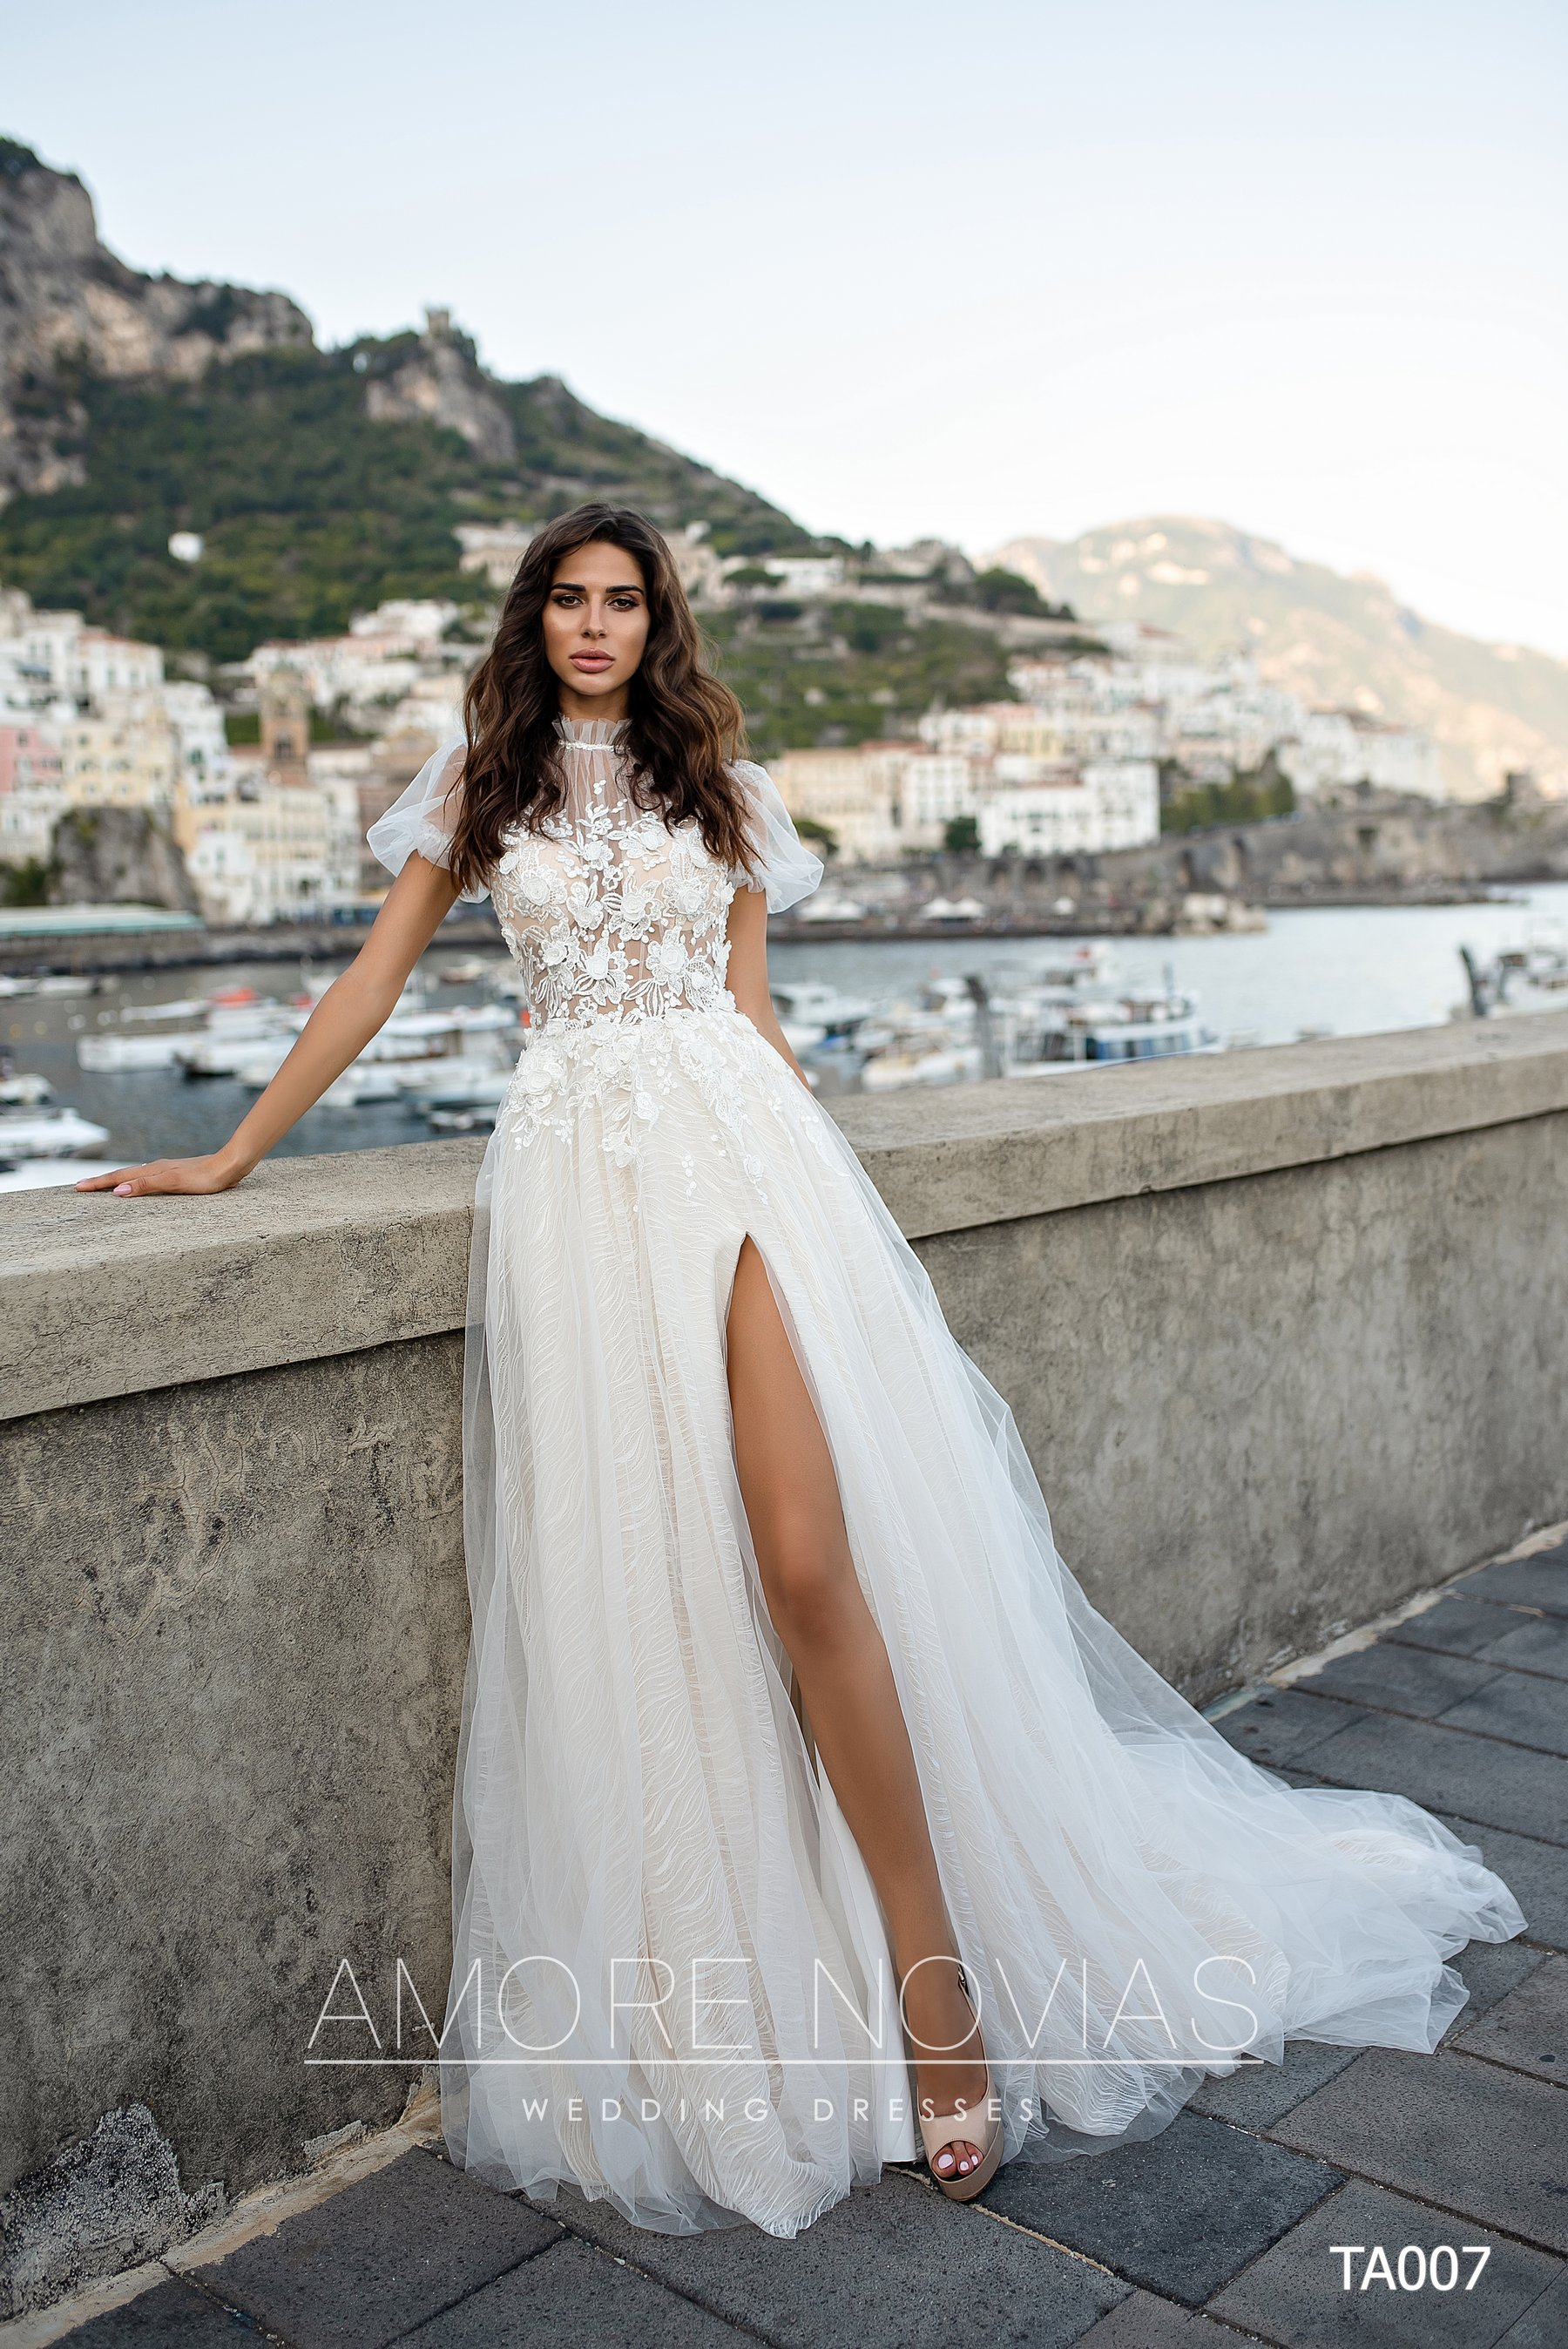 http://amore-novias.com/images/stories/virtuemart/product/TA007       (1).jpg